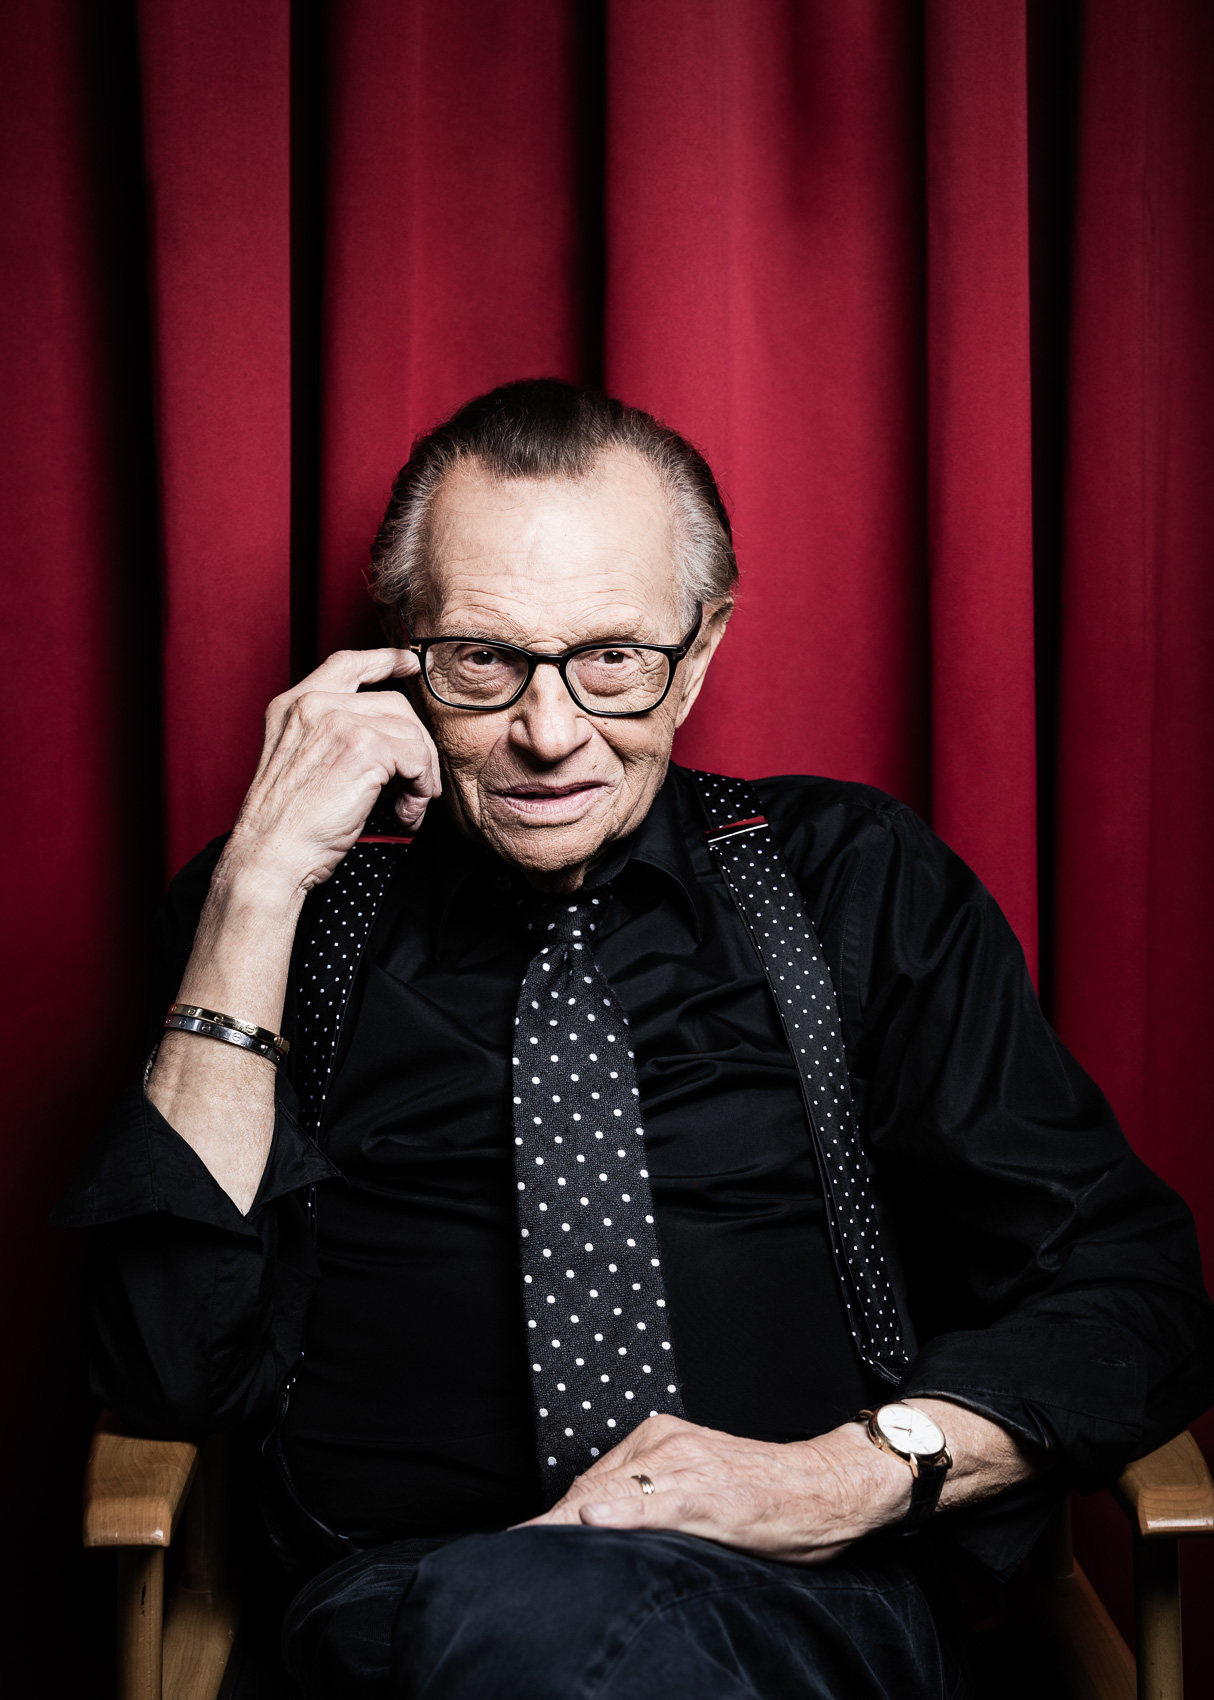 Larry King,  television and radio host / BILD | PATRICK STRATTNER PHOTOGRAPHY